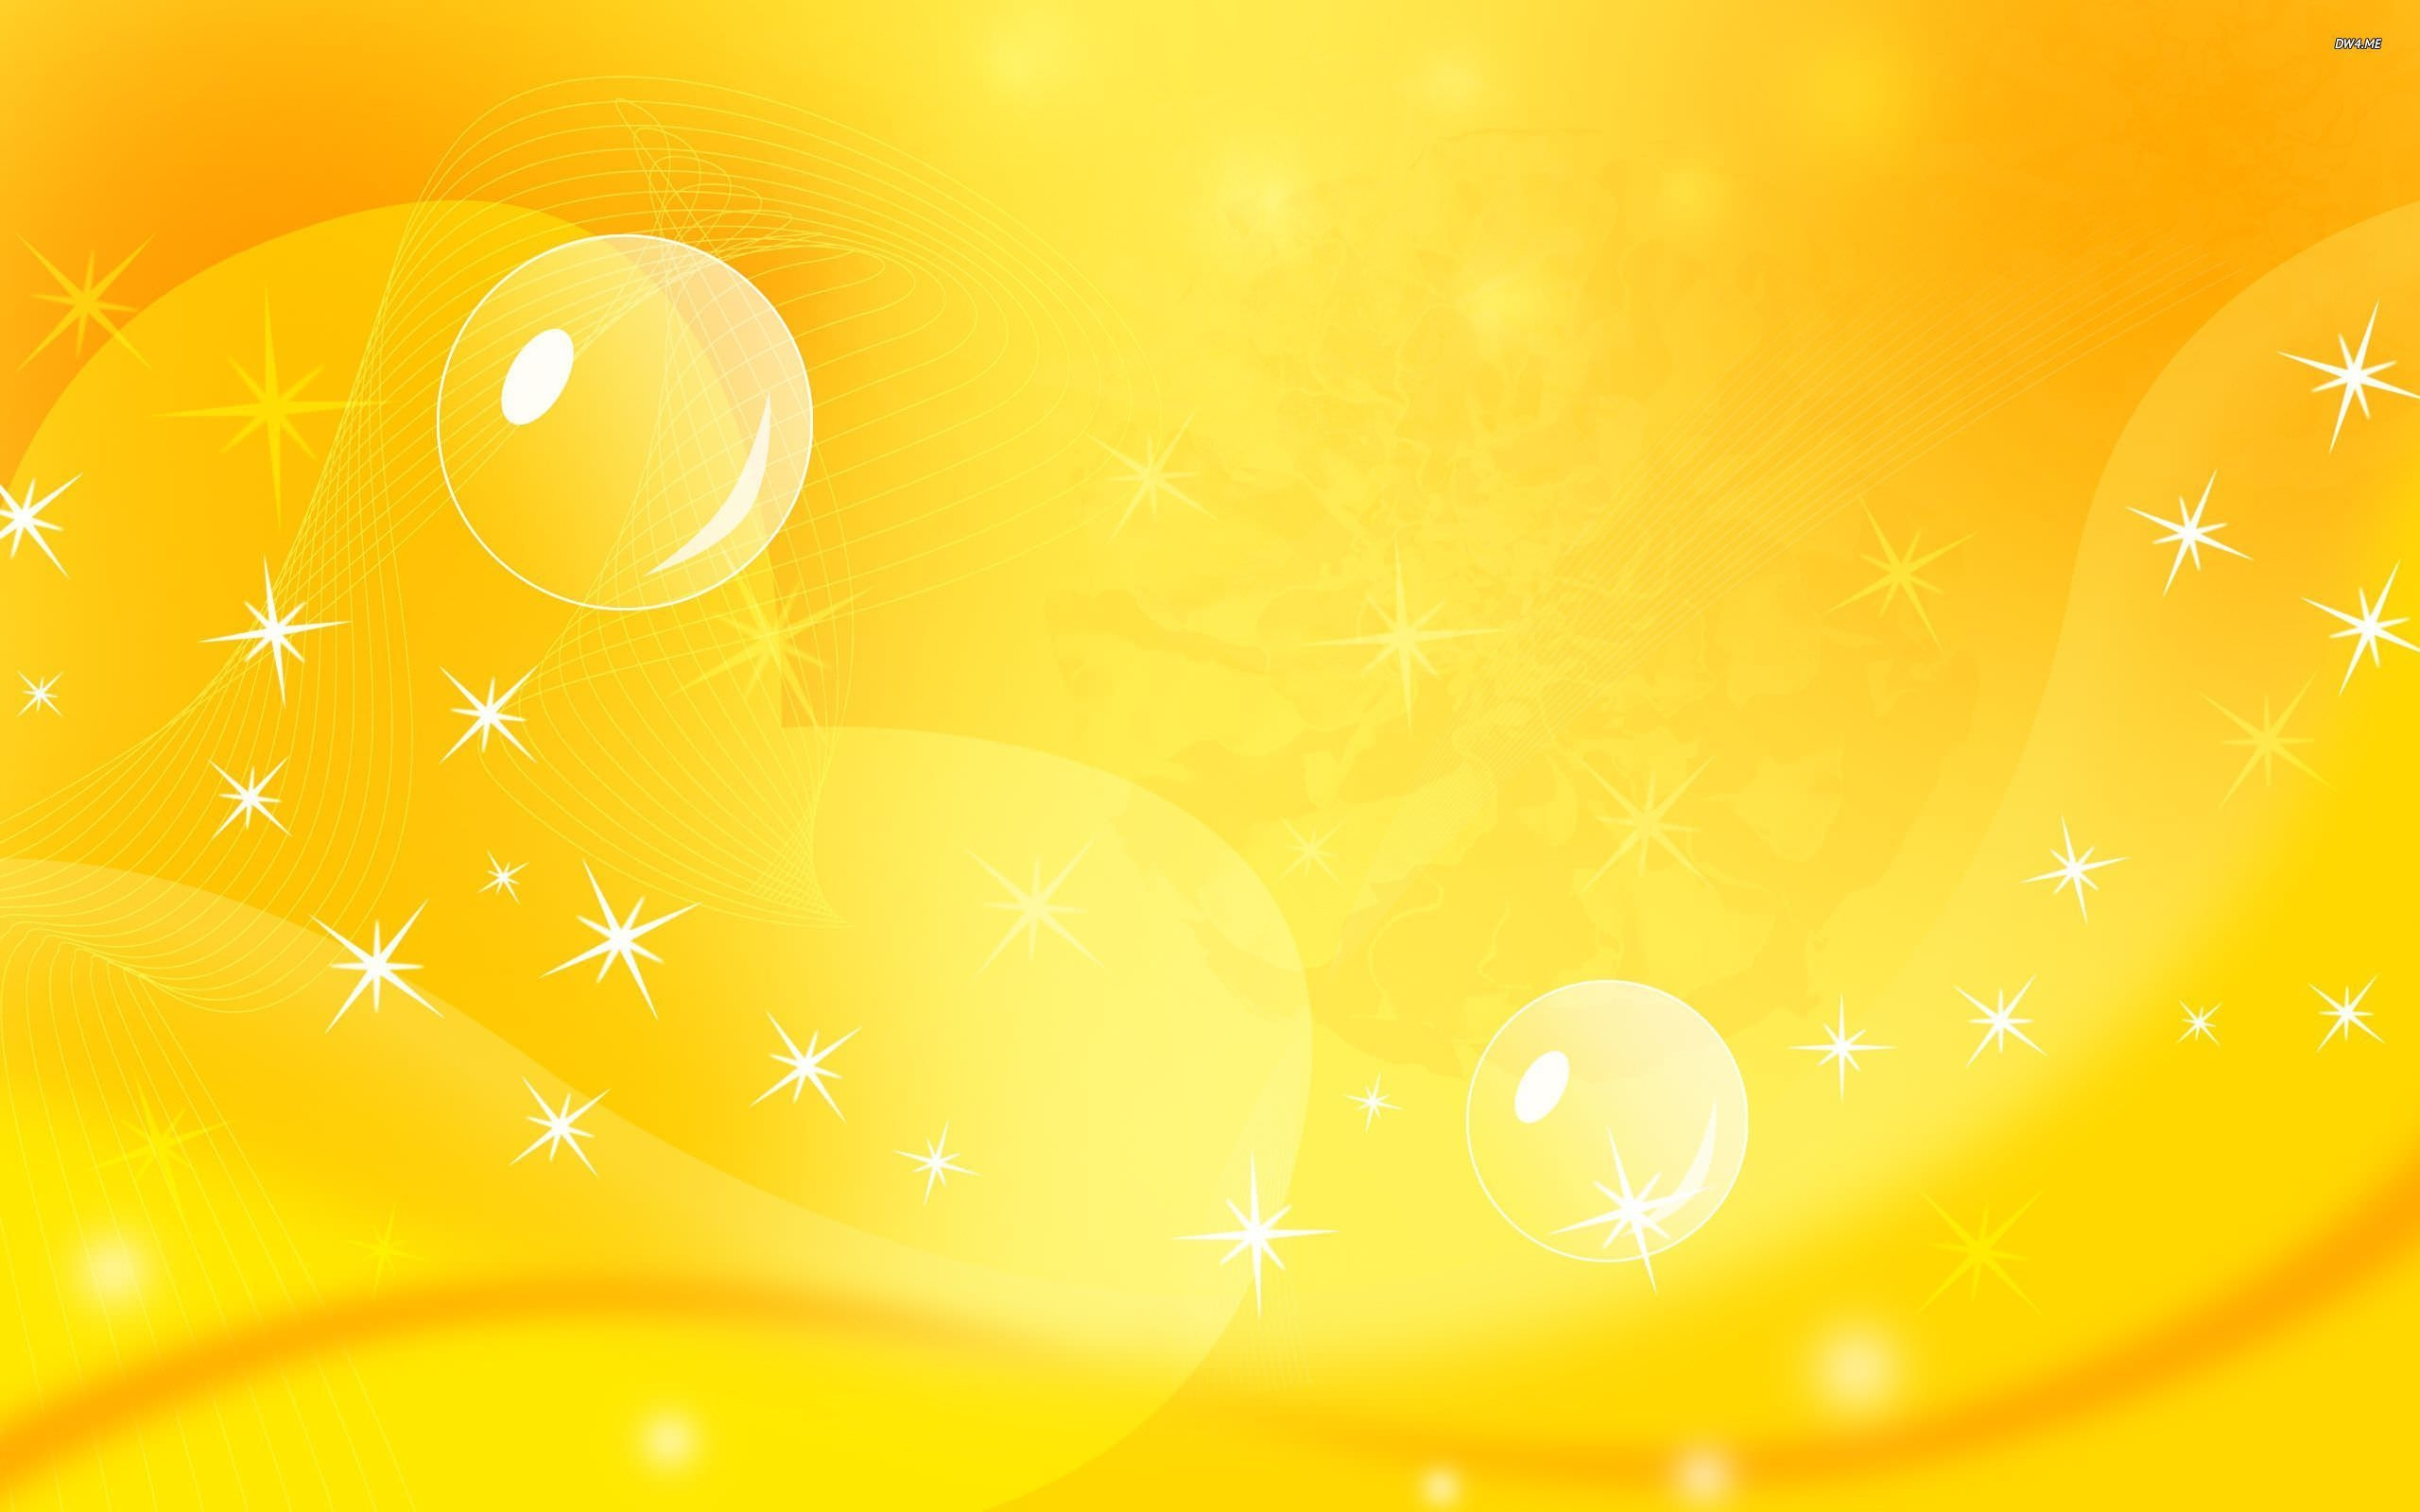 Bright Yellow Background Wallpaper with Sparkles